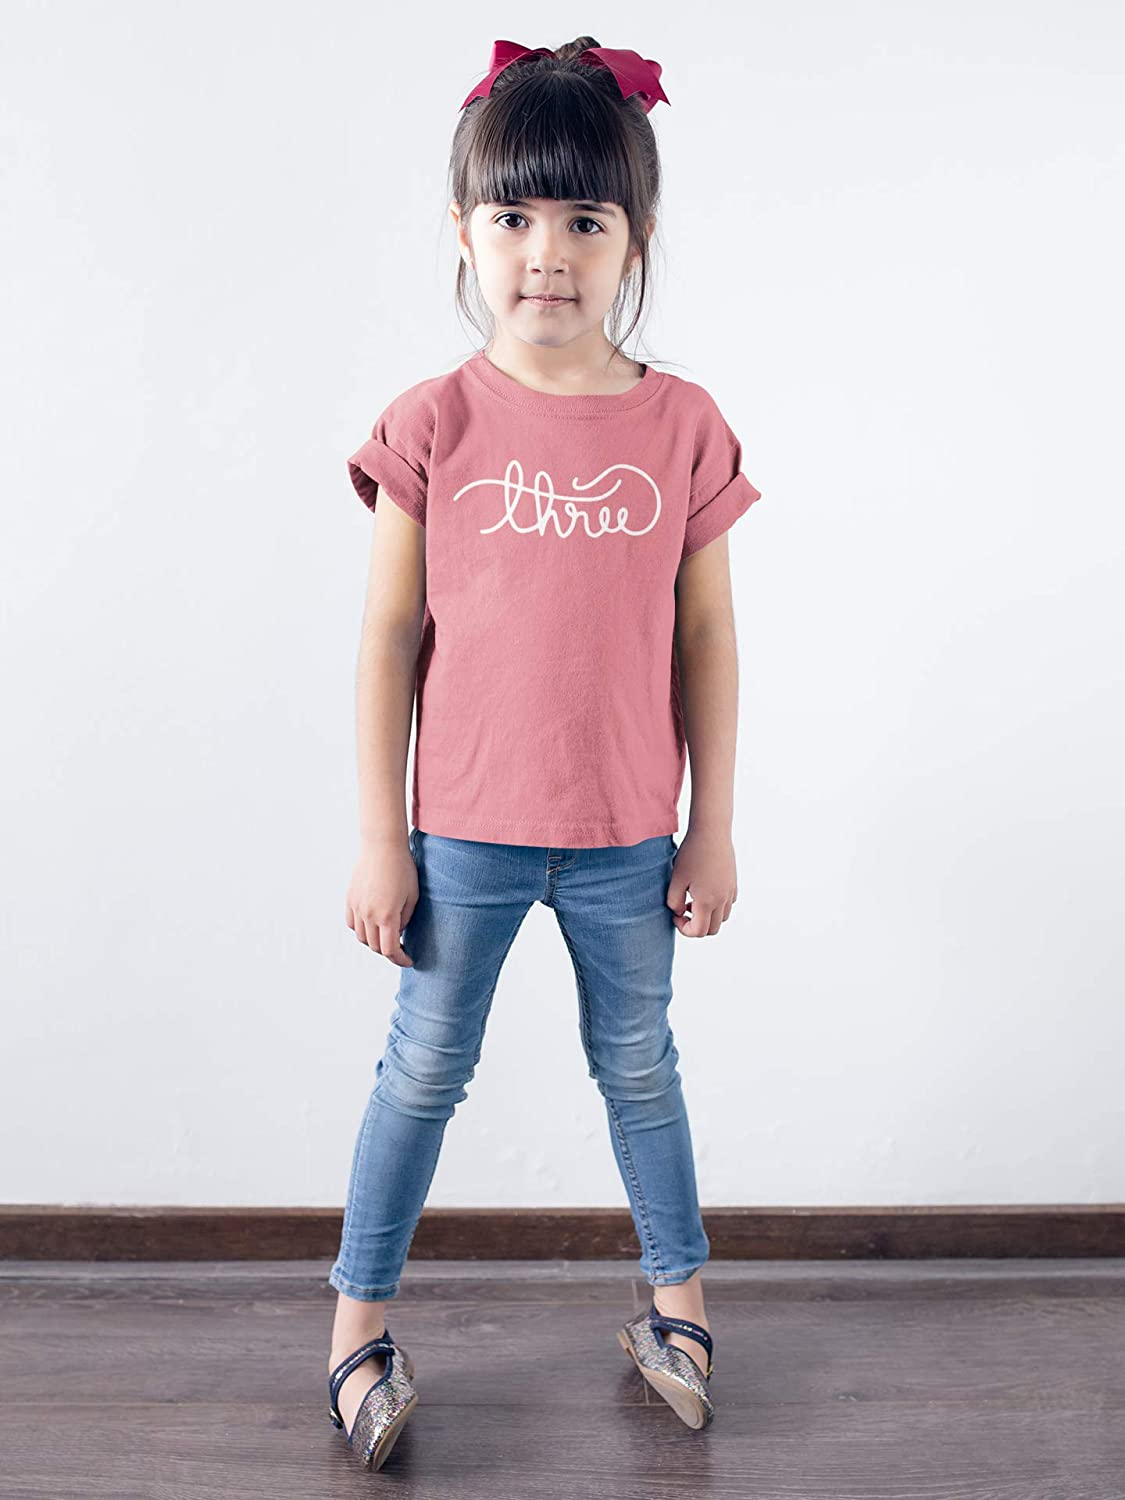 Olive Loves Apple Girls Cursive Three Shirt for Toddler Girls 3rd Birthday Outfit